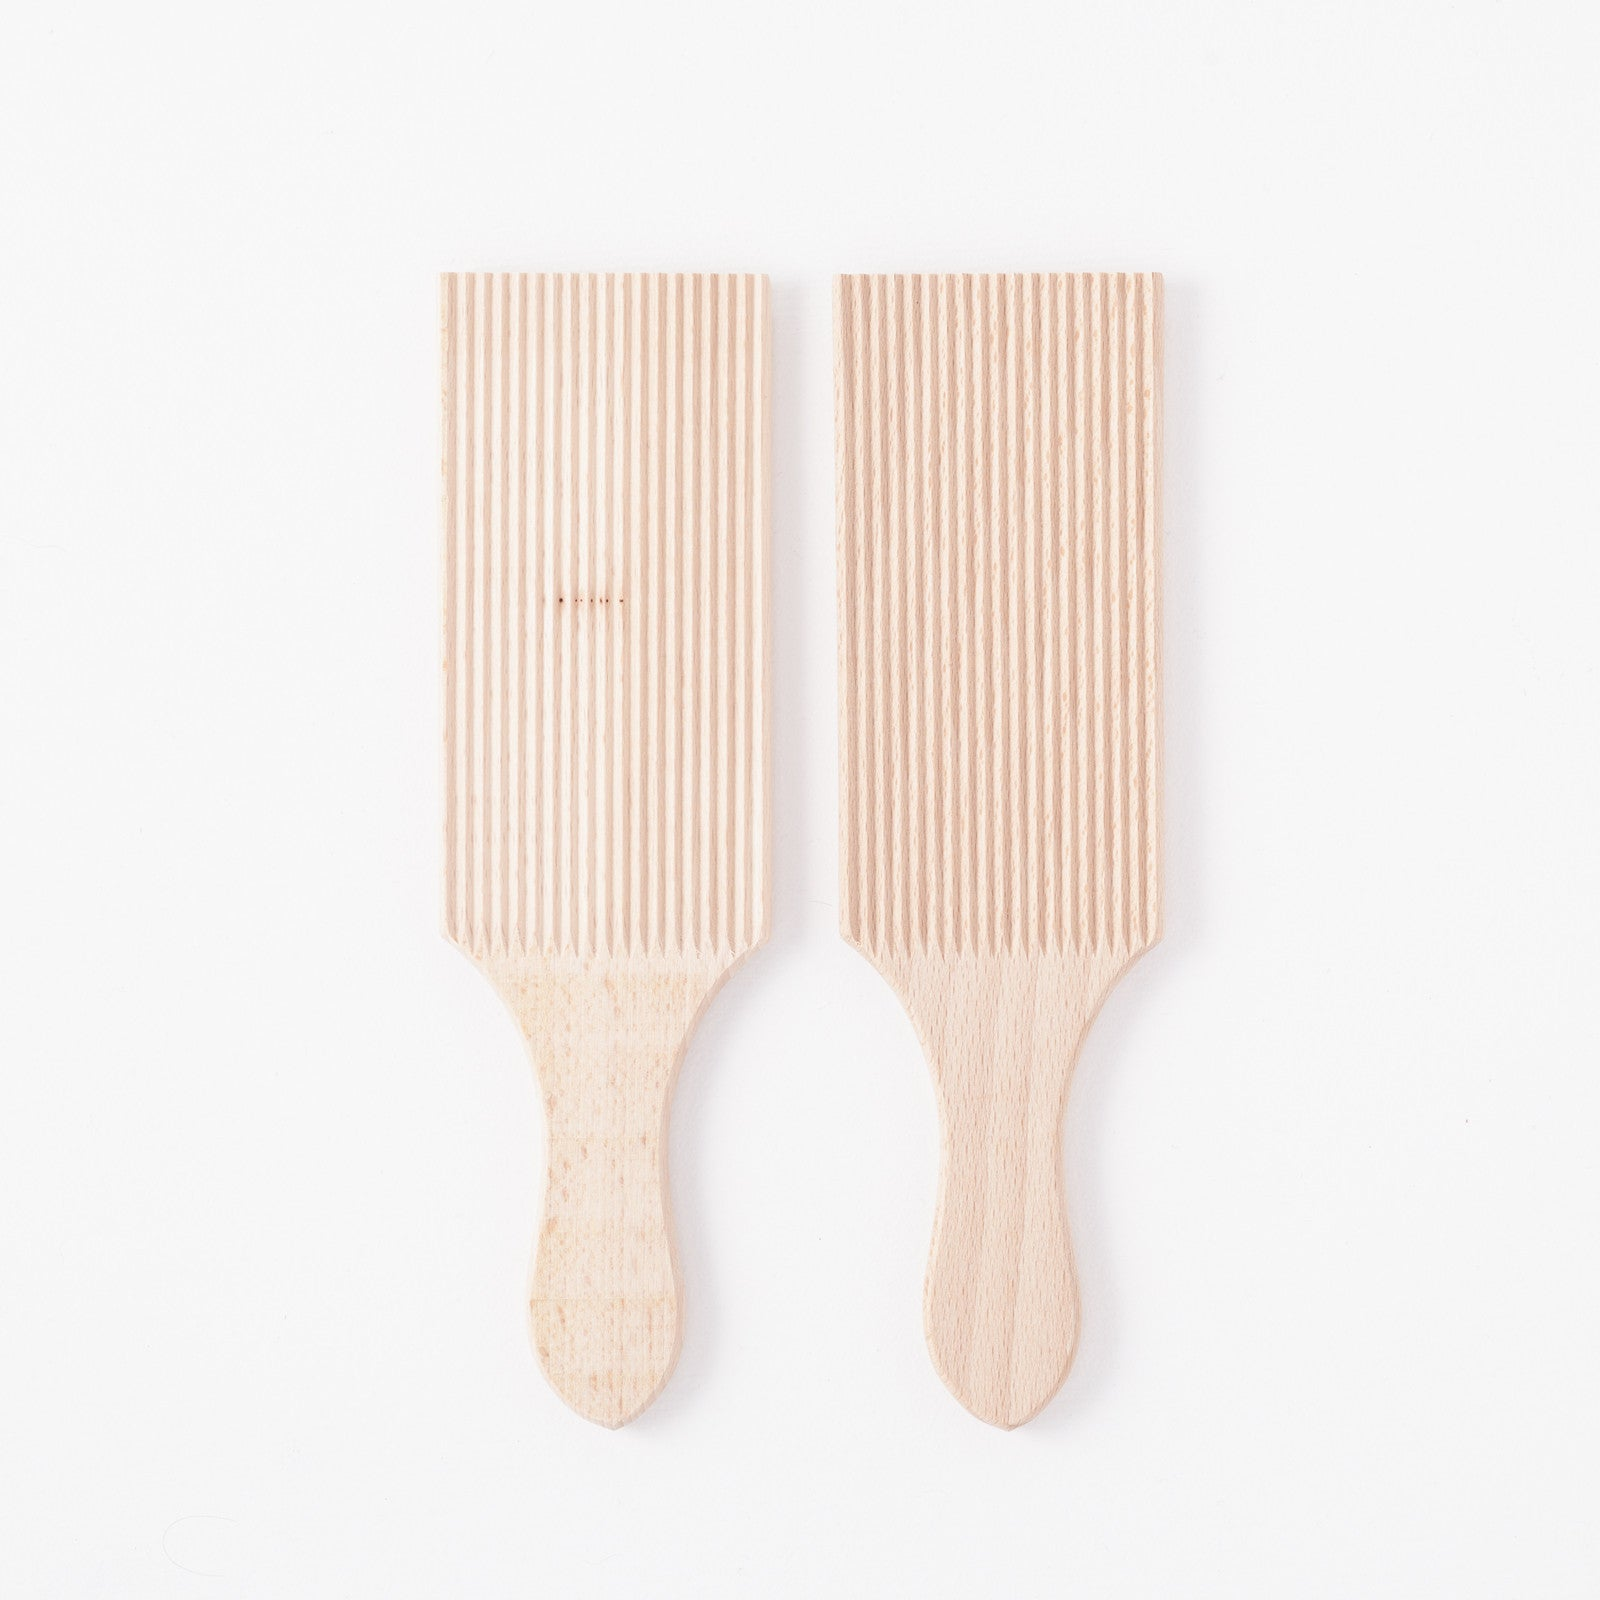 Butter Paddle Set